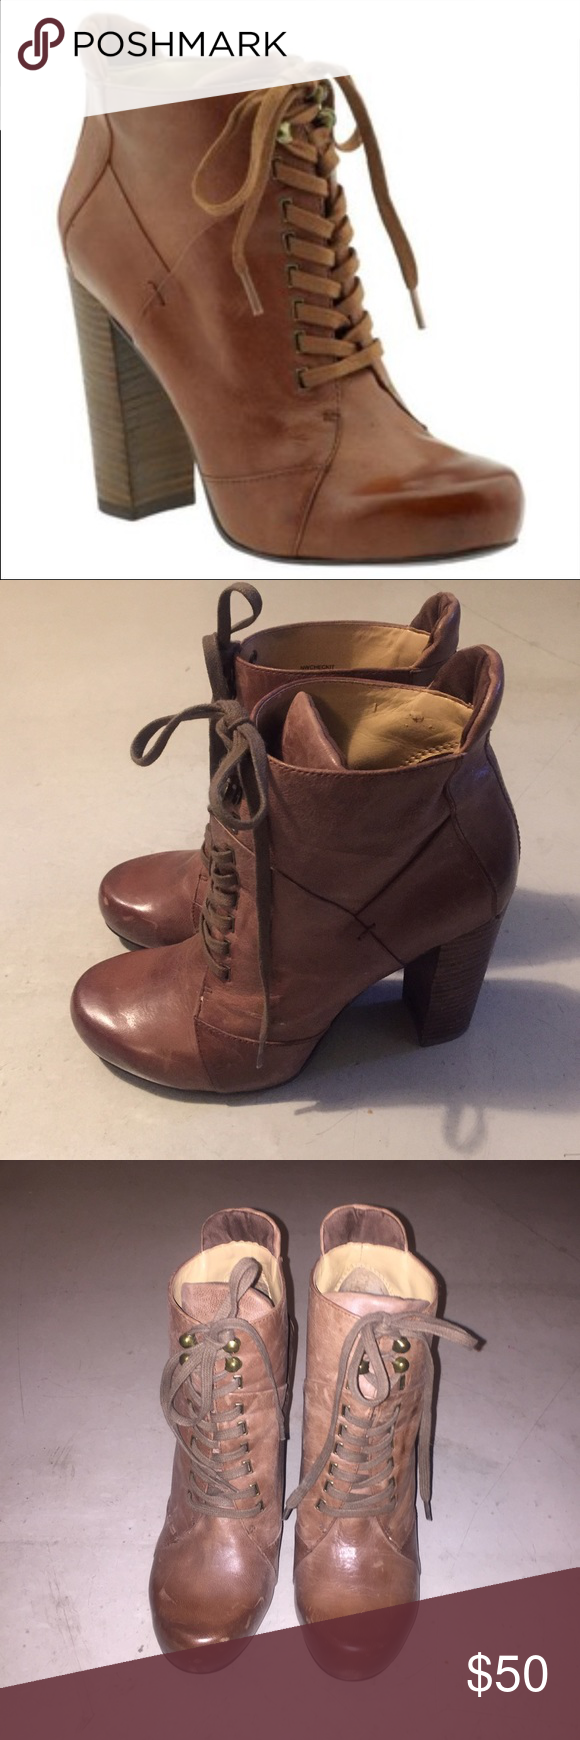 "Nine West brown checkit bootie 100% brown leather, 3.5"" heel. Style name checkit. Worn once. Nine West Shoes Ankle Boots & Booties"